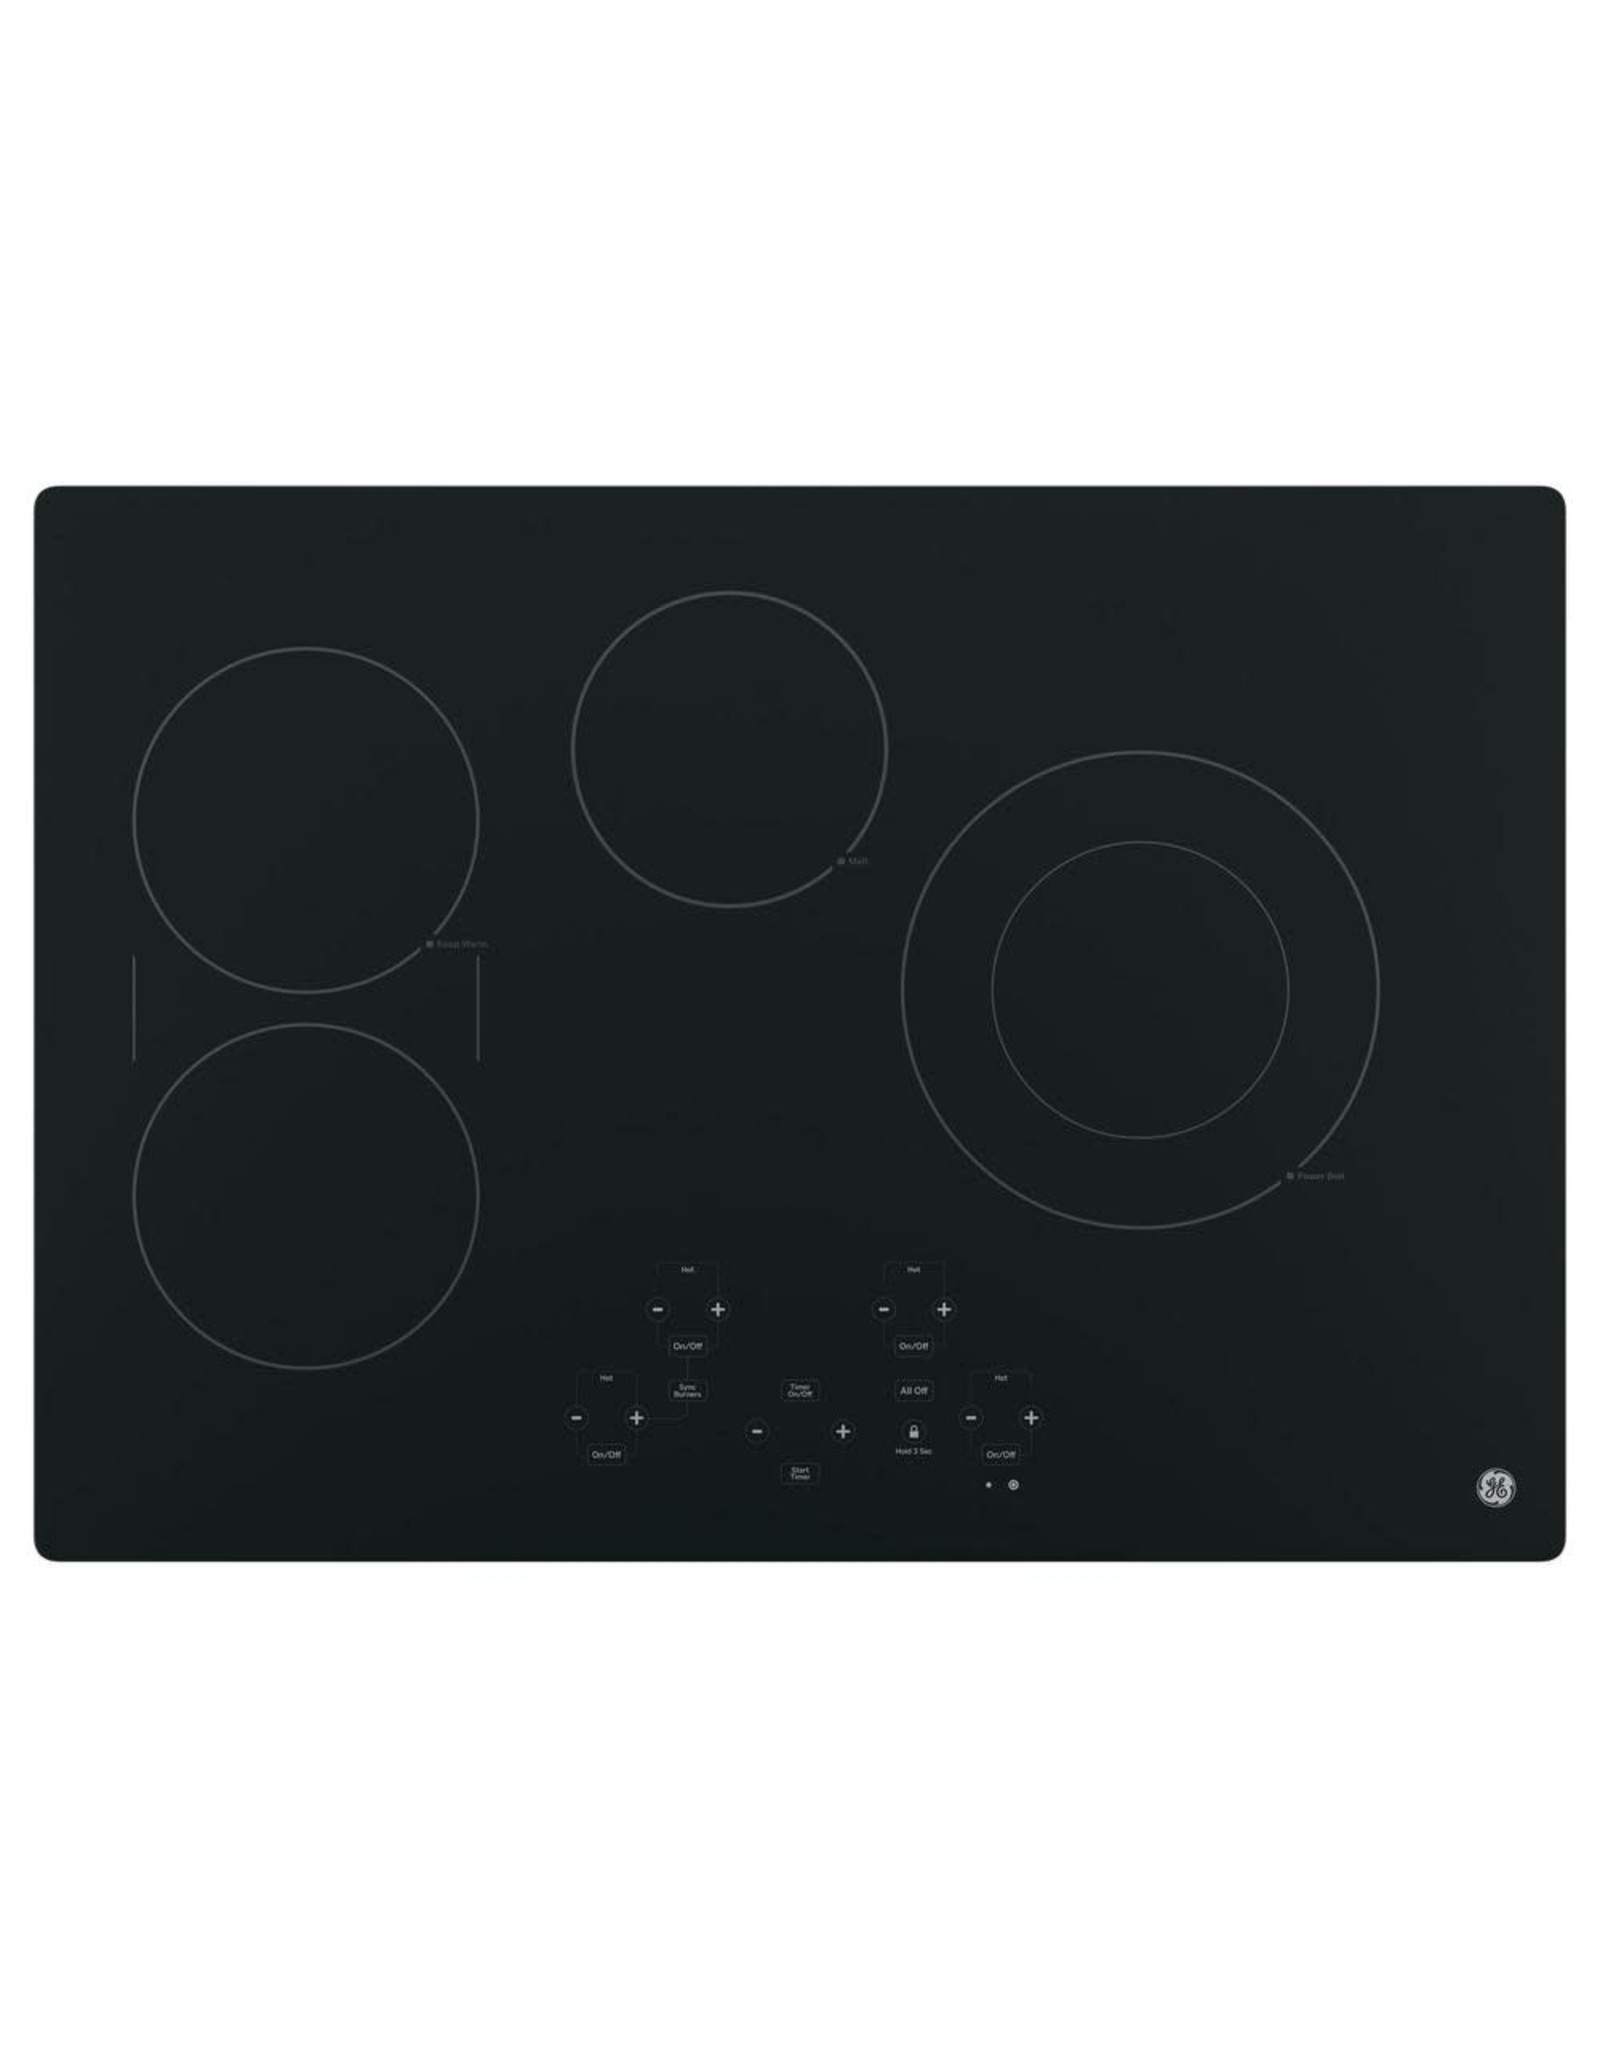 GE JP5030DJBB 30 in. Radiant Electric Cooktop in Black with 4 Elements including Power Boil Element